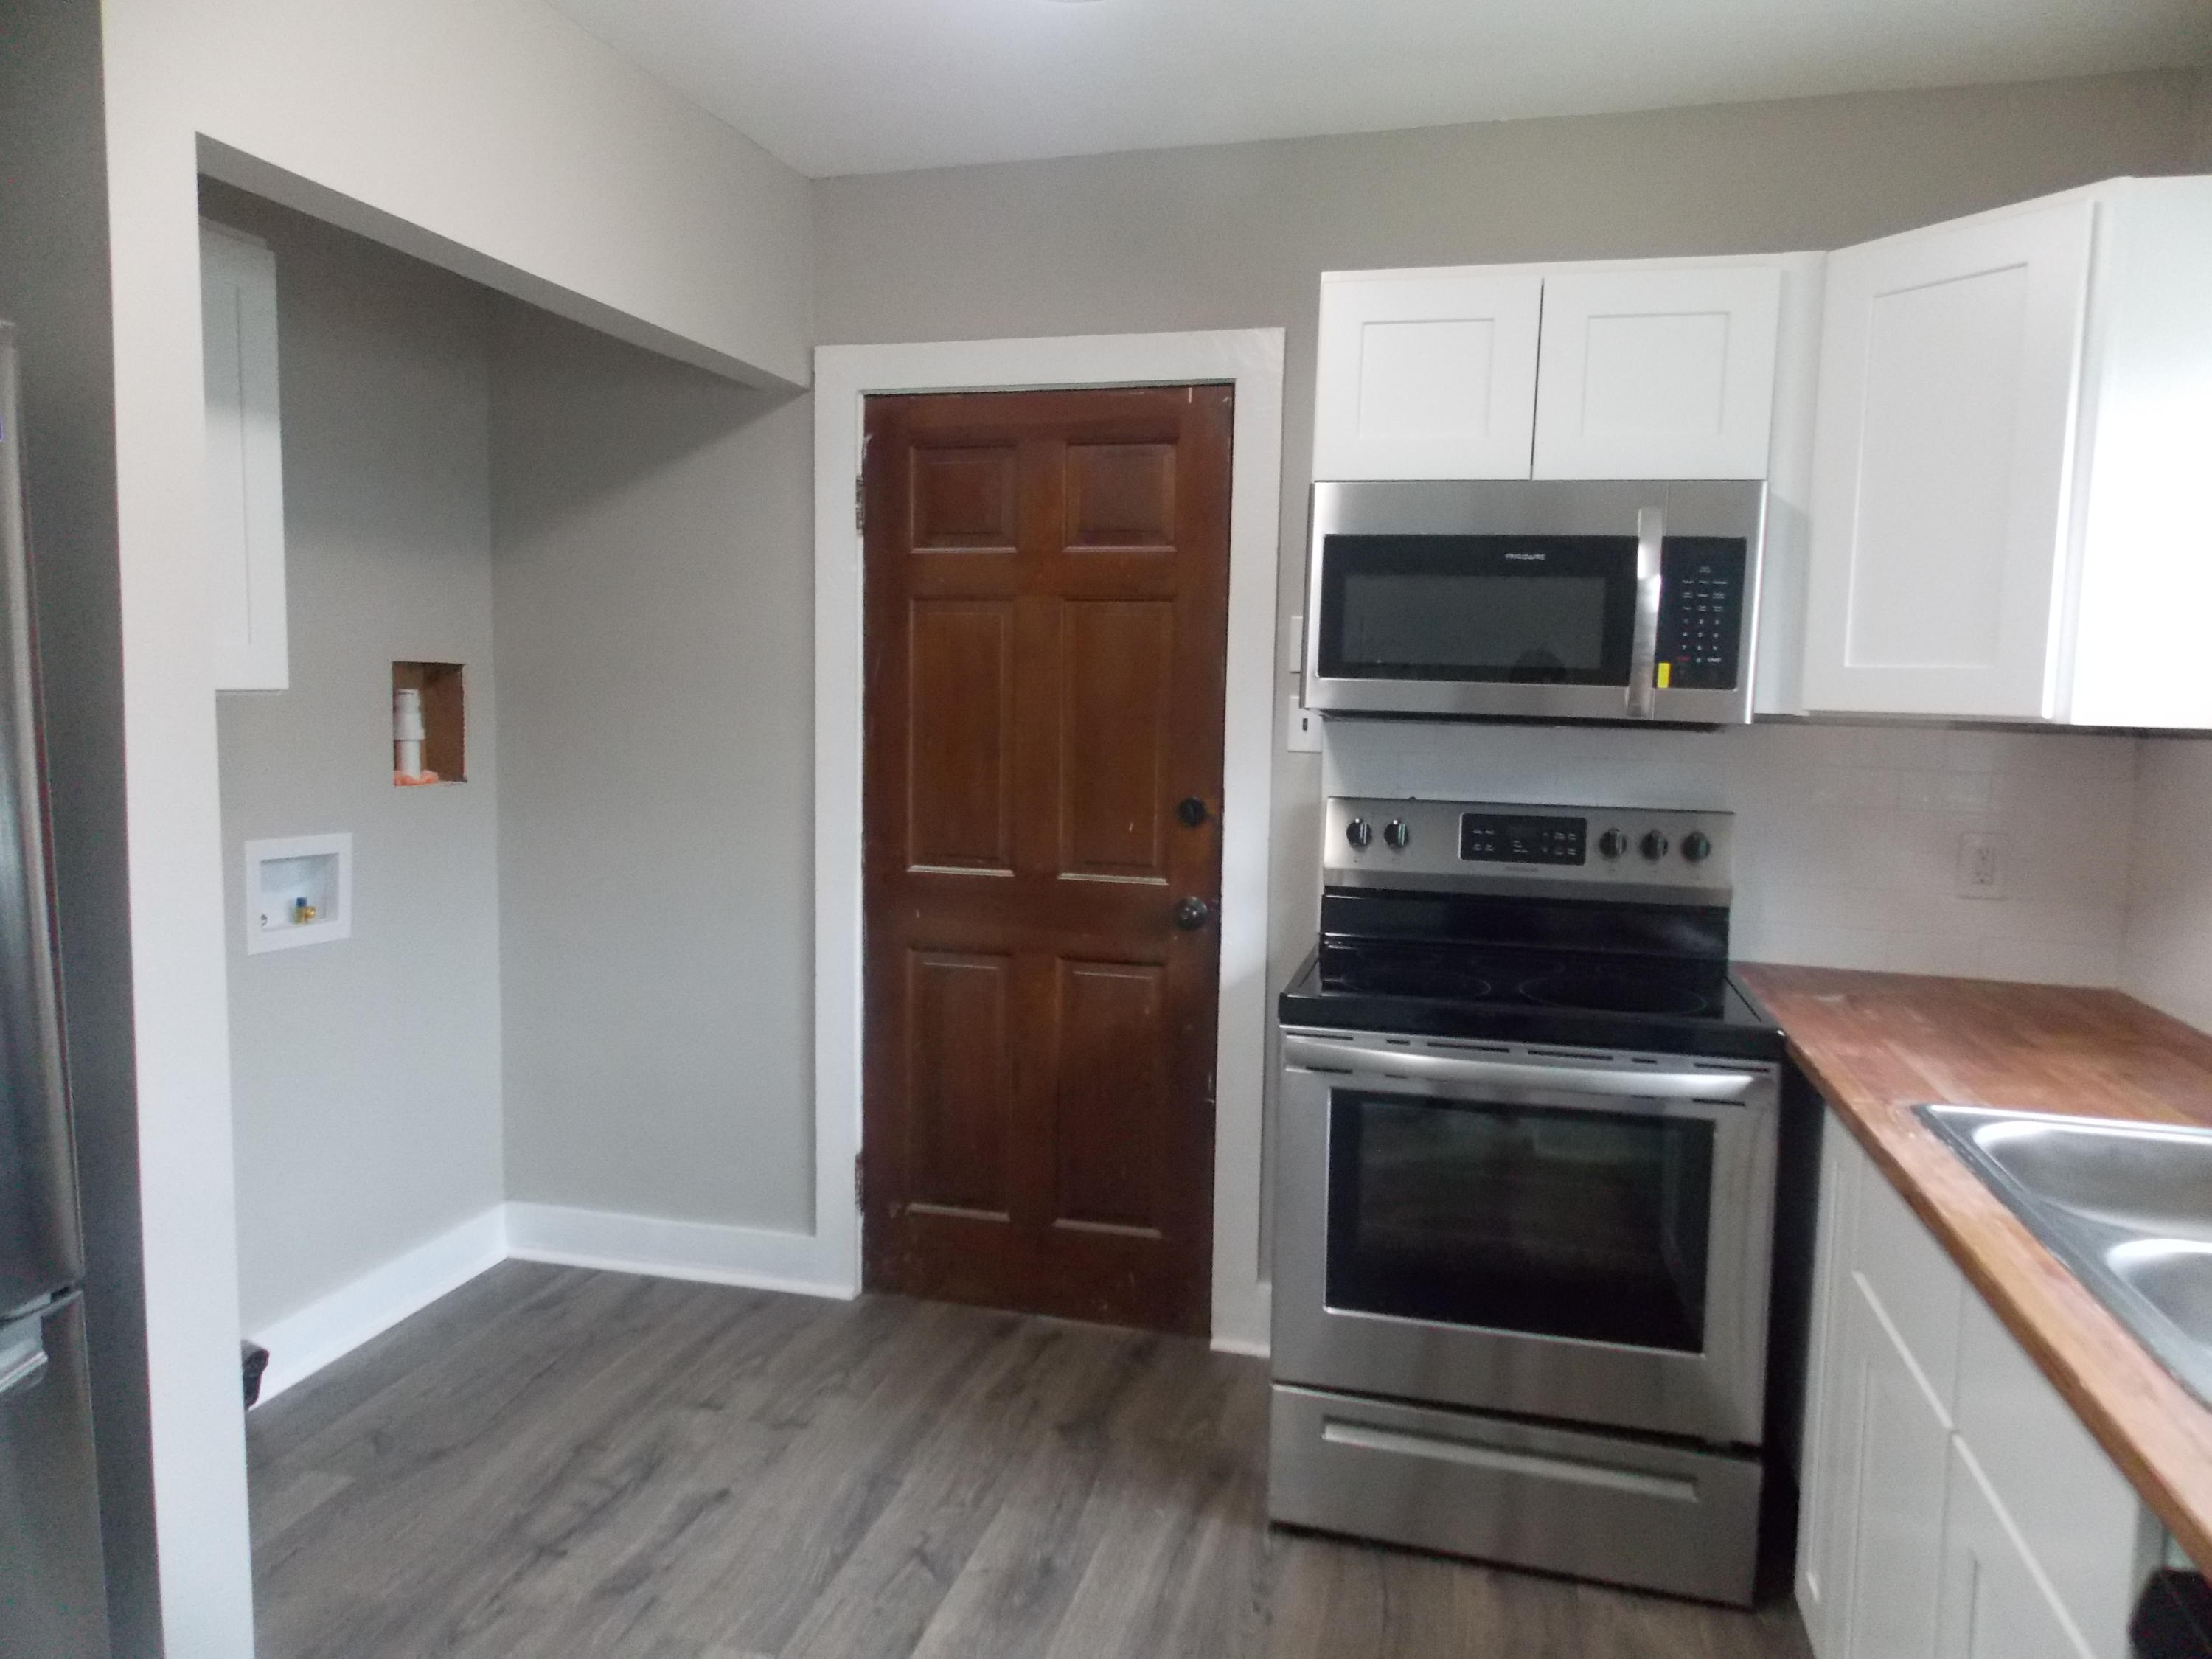 2946 Rennoc Rd, Knoxville, Tennessee 37918, 2 Bedrooms Bedrooms, ,1 BathroomBathrooms,Rental,For Sale,Rennoc,1069689